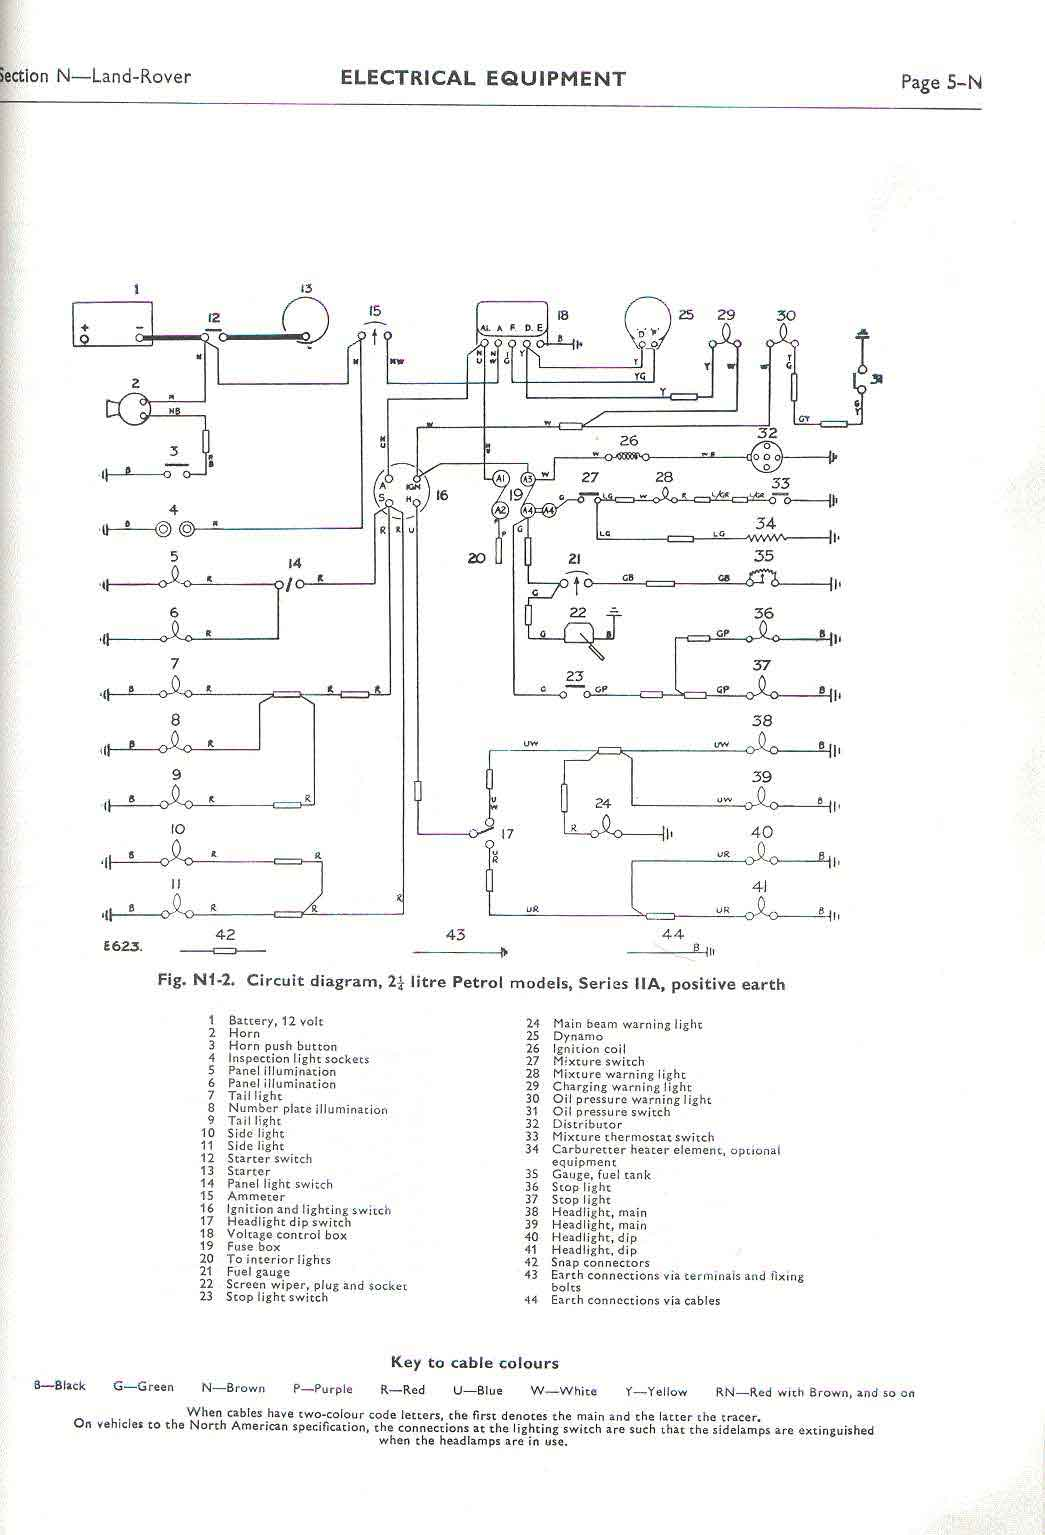 1995 land rover discovery wiring diagram land rover faq - repair & maintenance - series ...